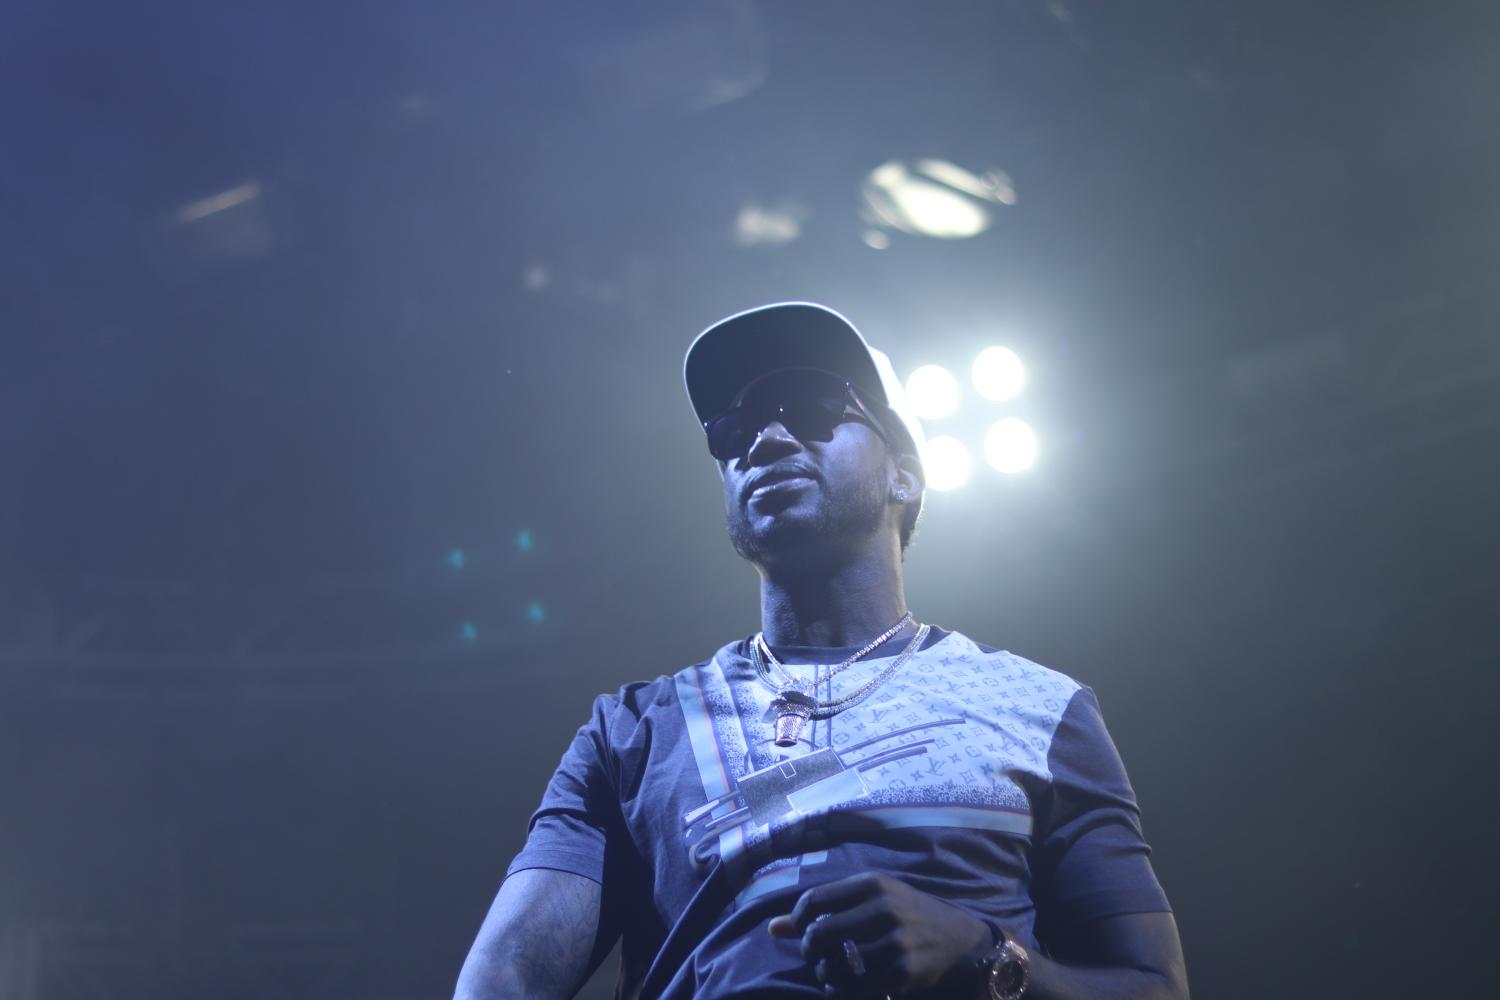 Gucci Mane performing at 515 Alive in Des Moines, Iowa.